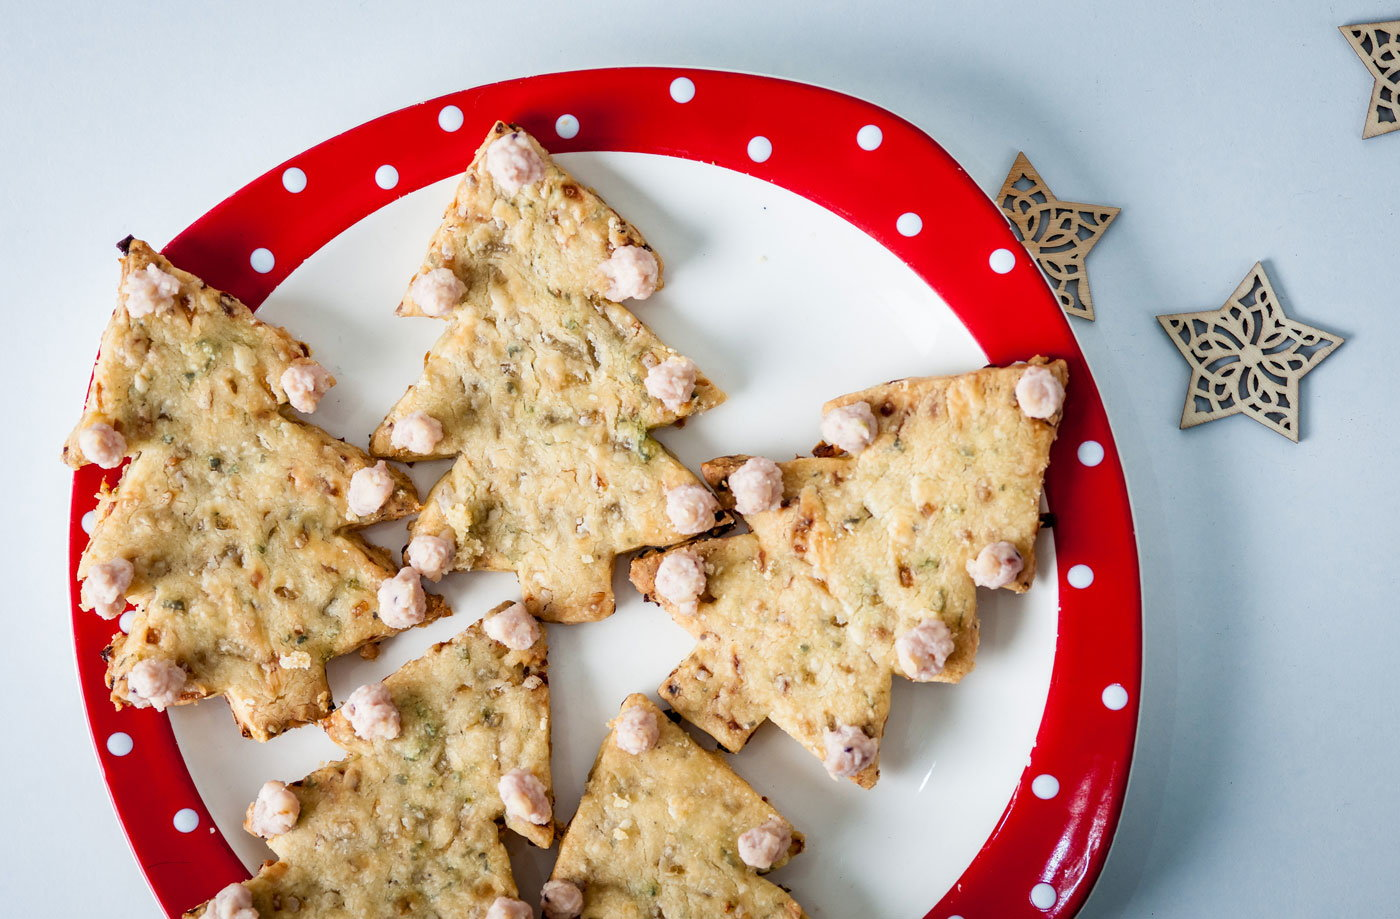 Alyn Williams' sage and onion Christmas tree shortbread with cheddar and cranberry baubles recipe